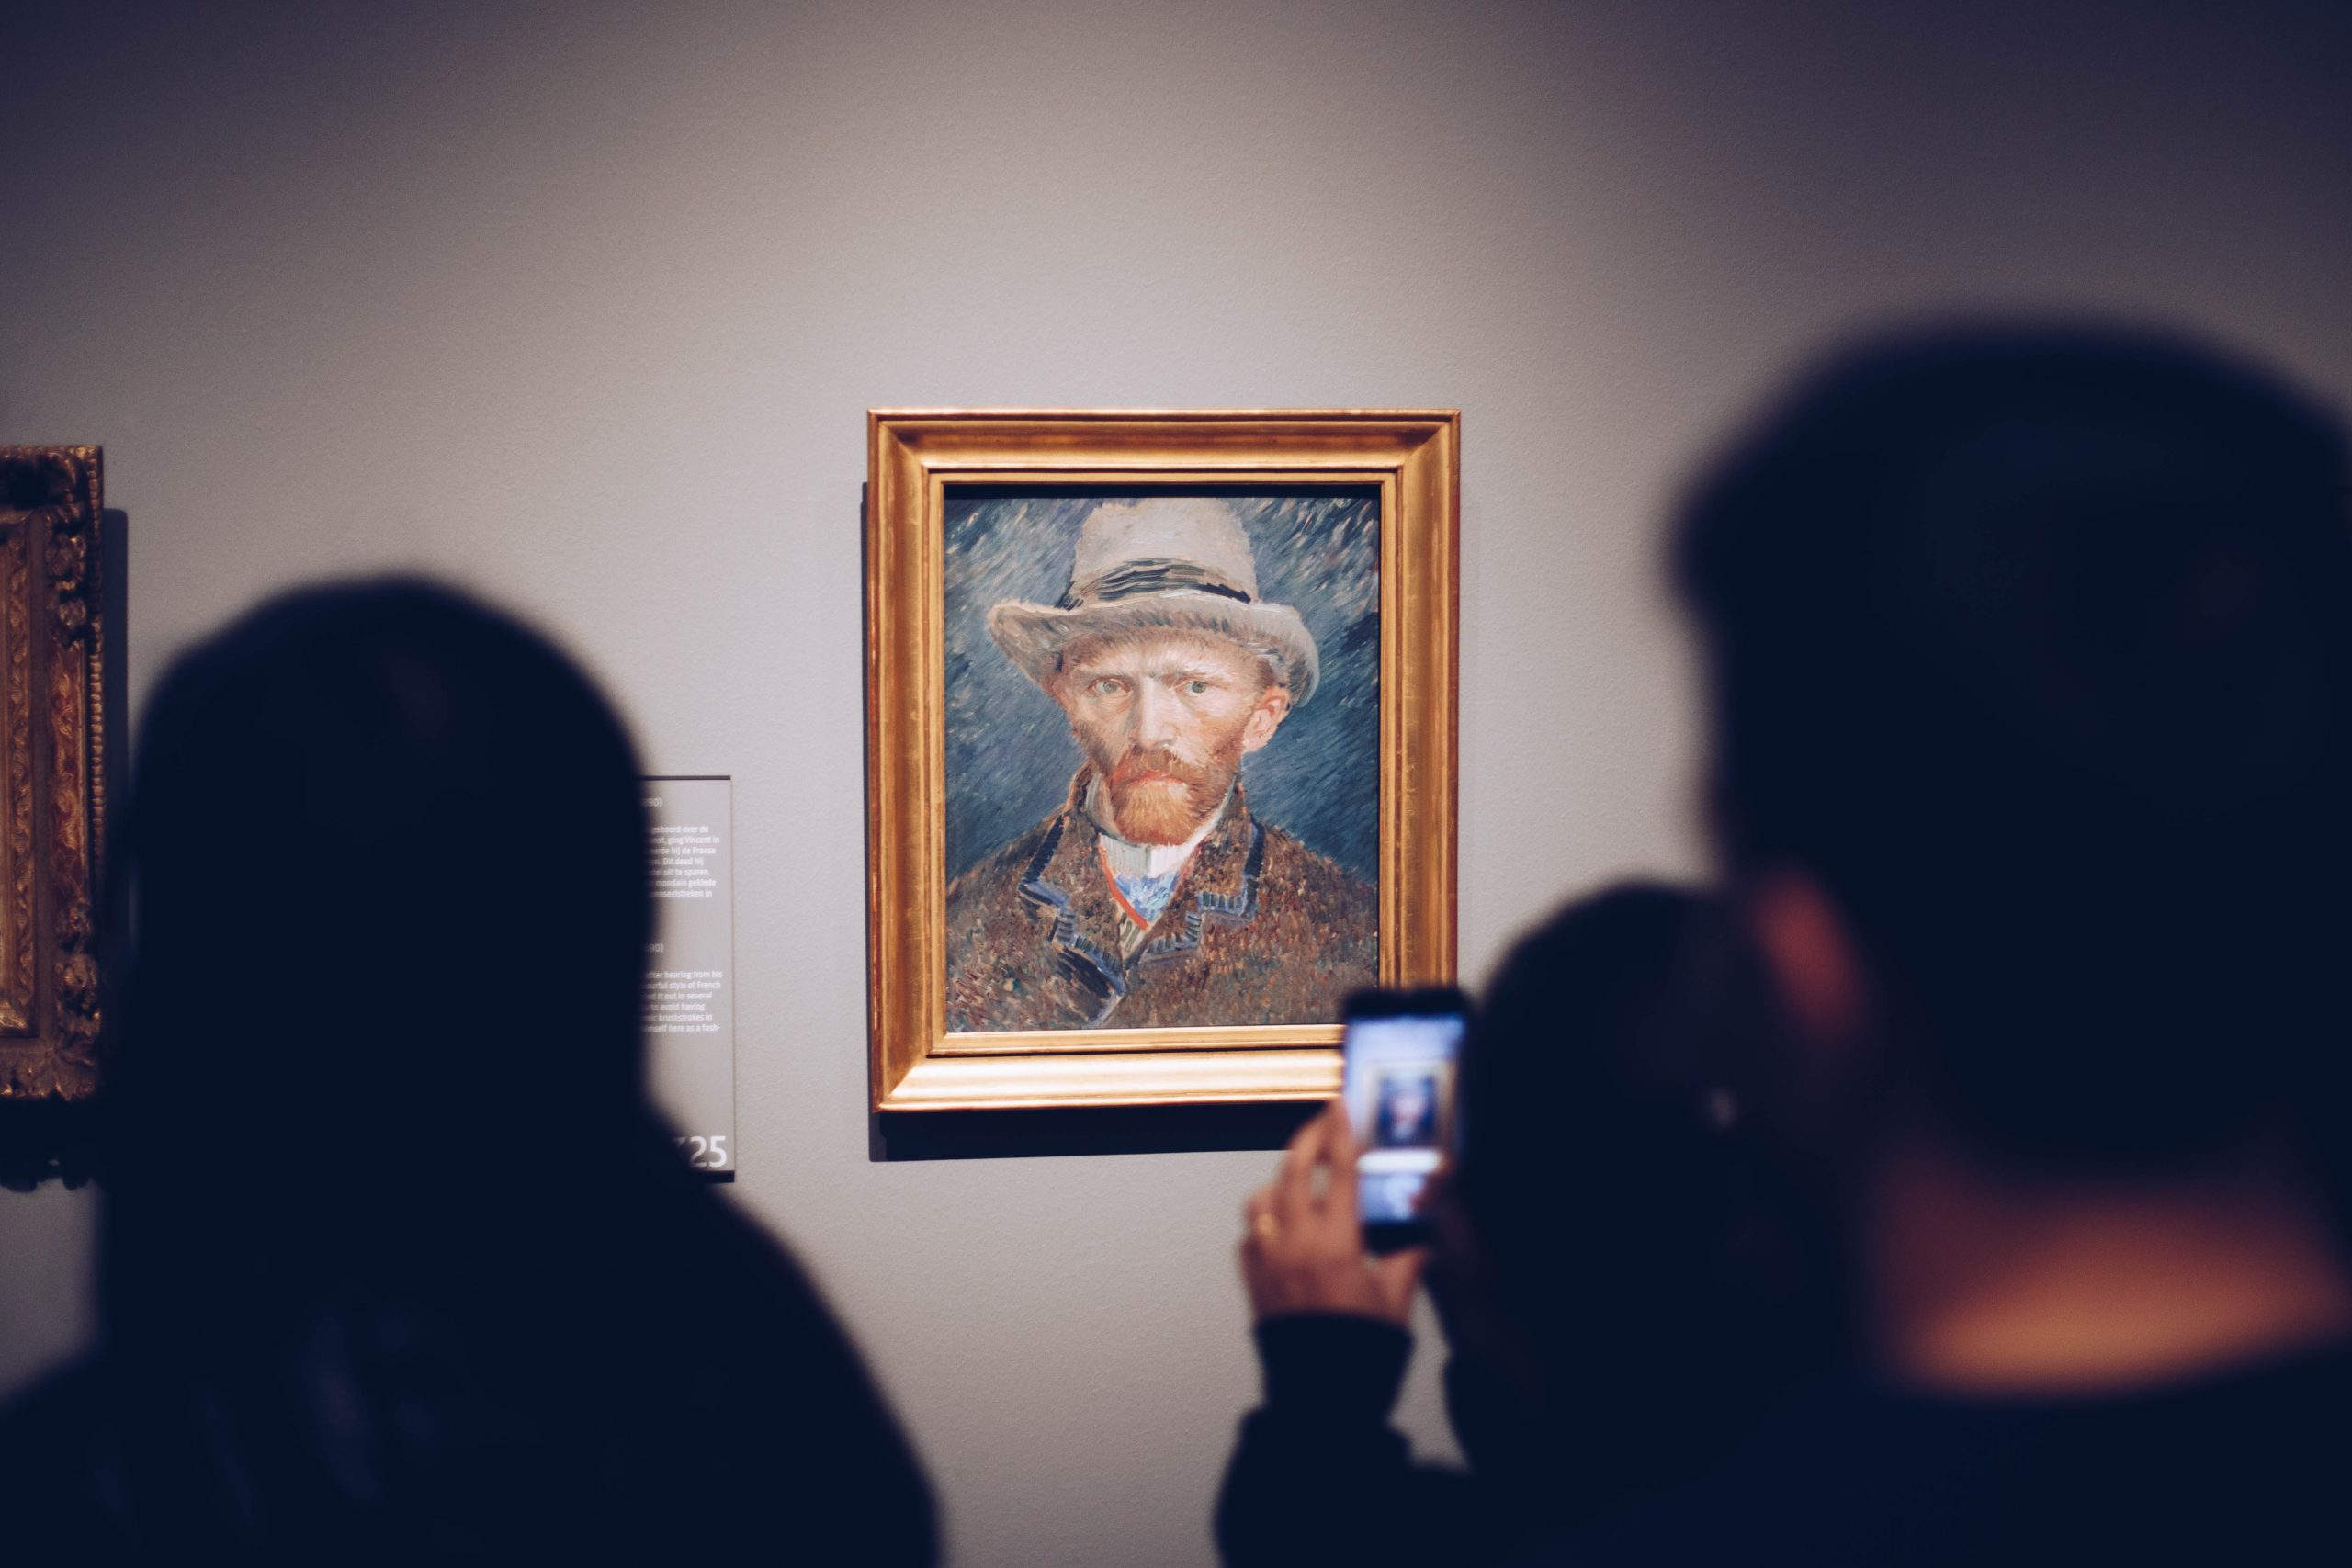 Image of a Van Gogh portrait on a wall, whilst in the foreground people are looking at it, one person taking a photo on their phone.